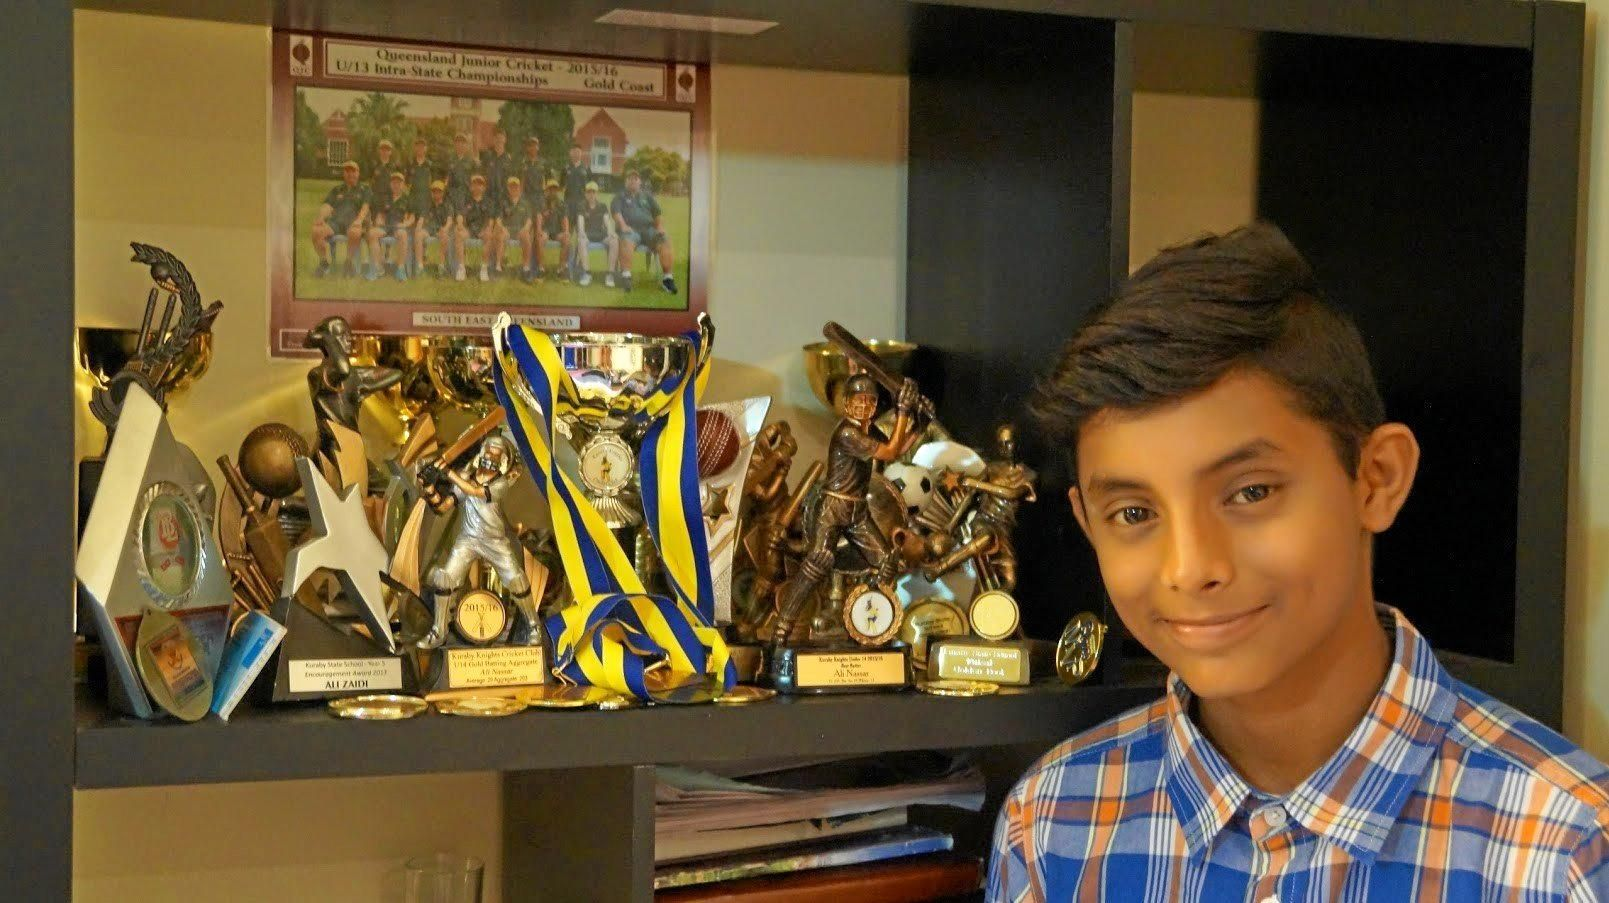 TOP TALENT: 14-year-old Ali Nasar Zaidi is committed to his dream of one day playing cricket for Australia.